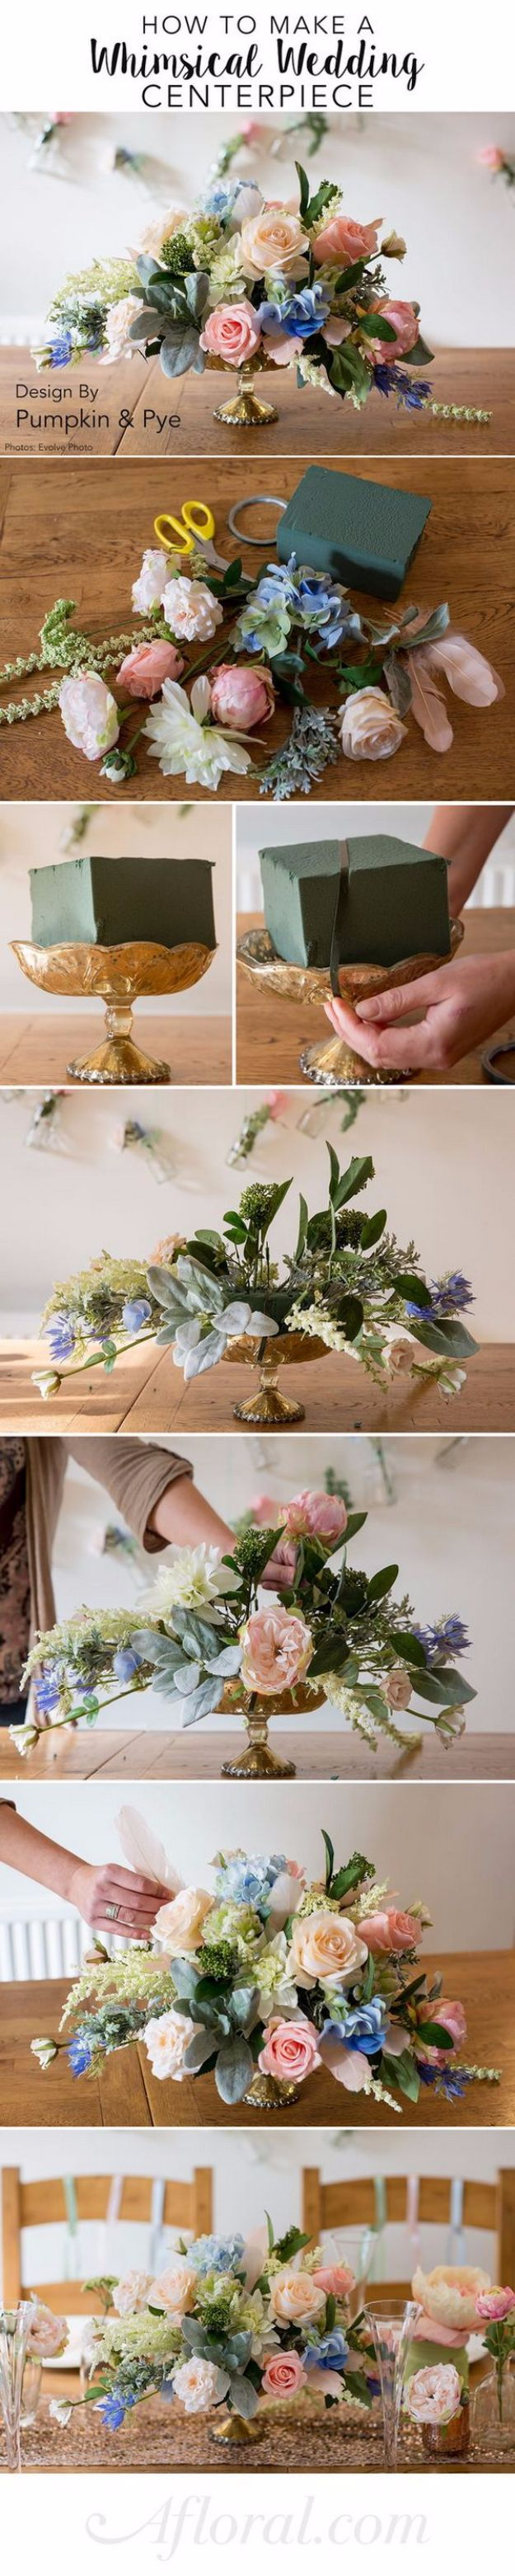 33 best diy wedding centerpieces you can make on a budget diy wedding centerpieces diy whimsical wedding centerpiece do it yourself ideas for brides and solutioingenieria Gallery